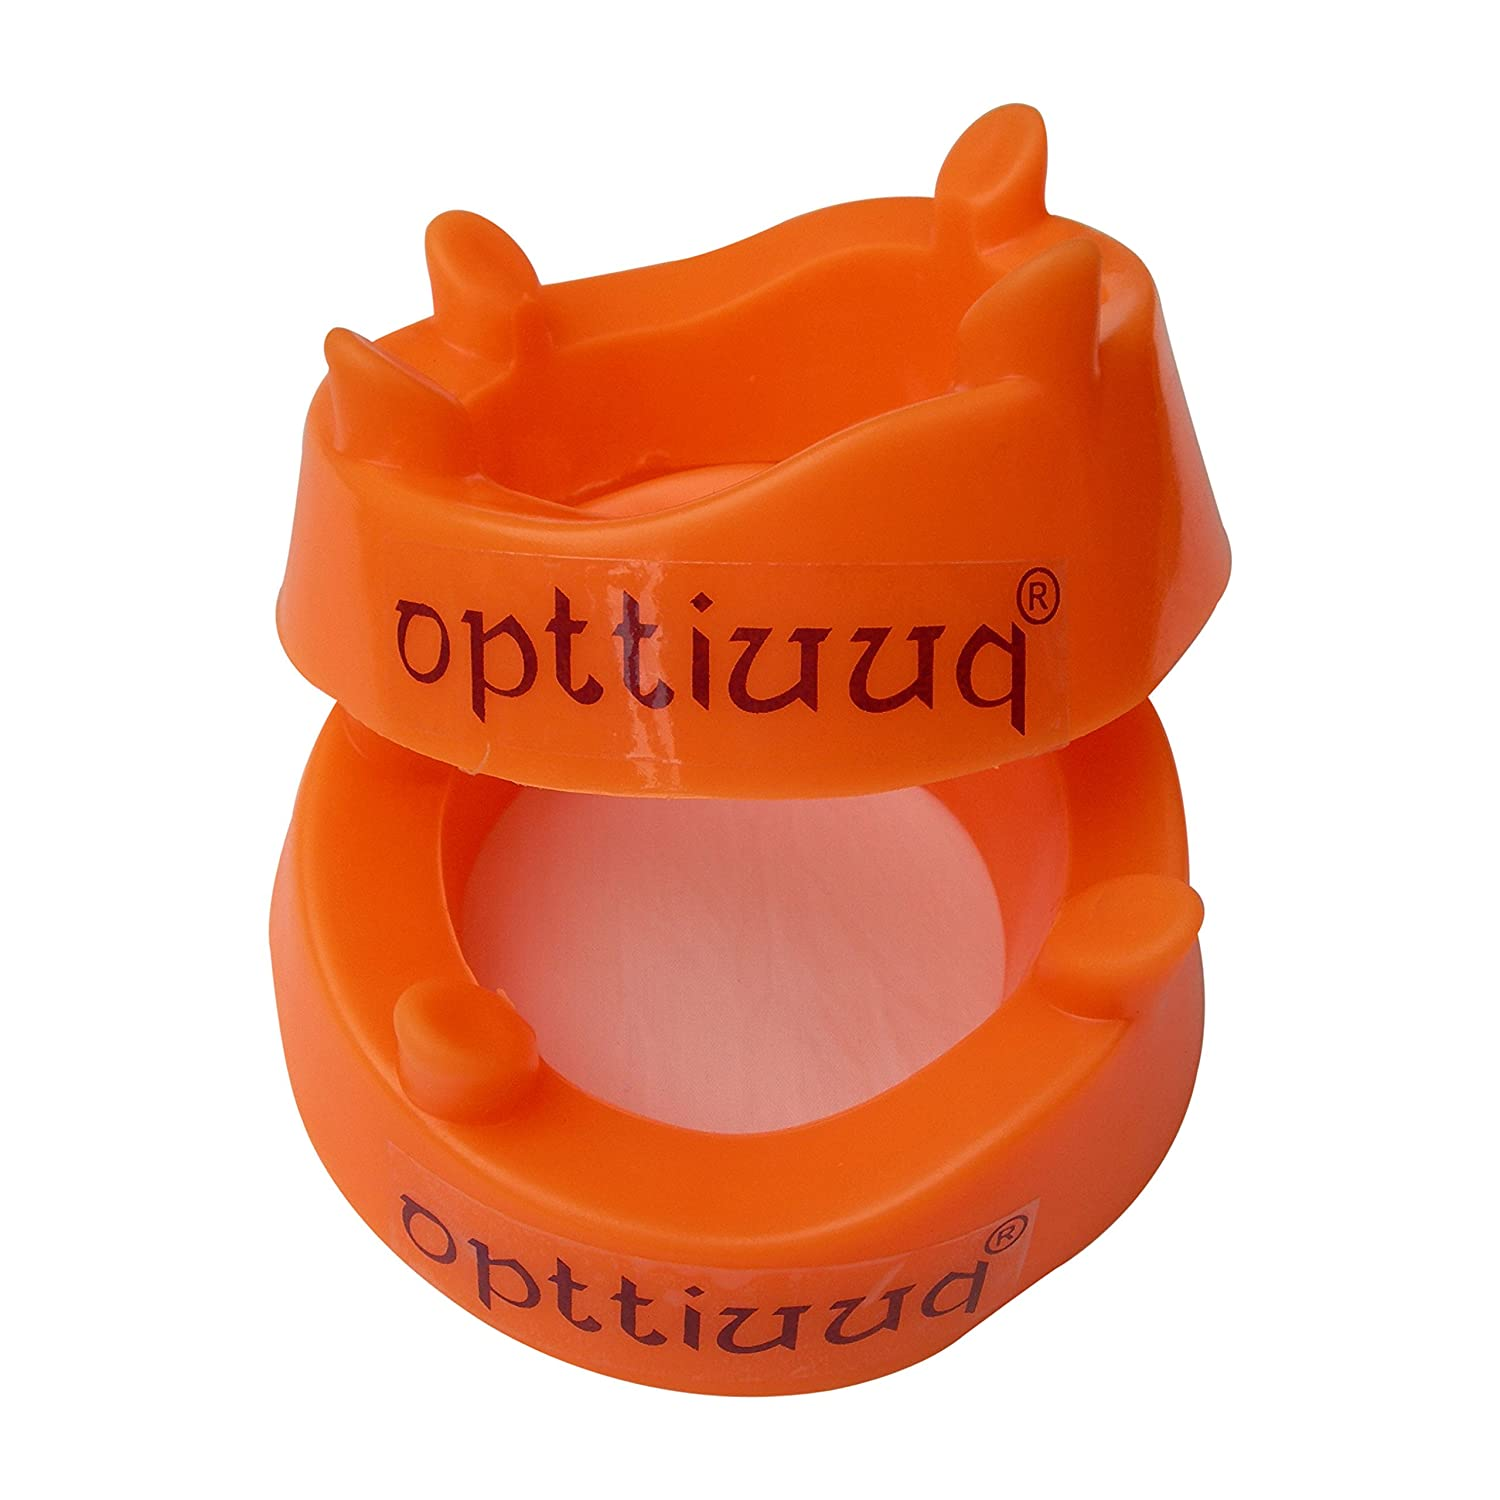 2 x Opttiuuq Rugby Kicking Tee. Random Colour - Ideal for Kicking Rugby Ball